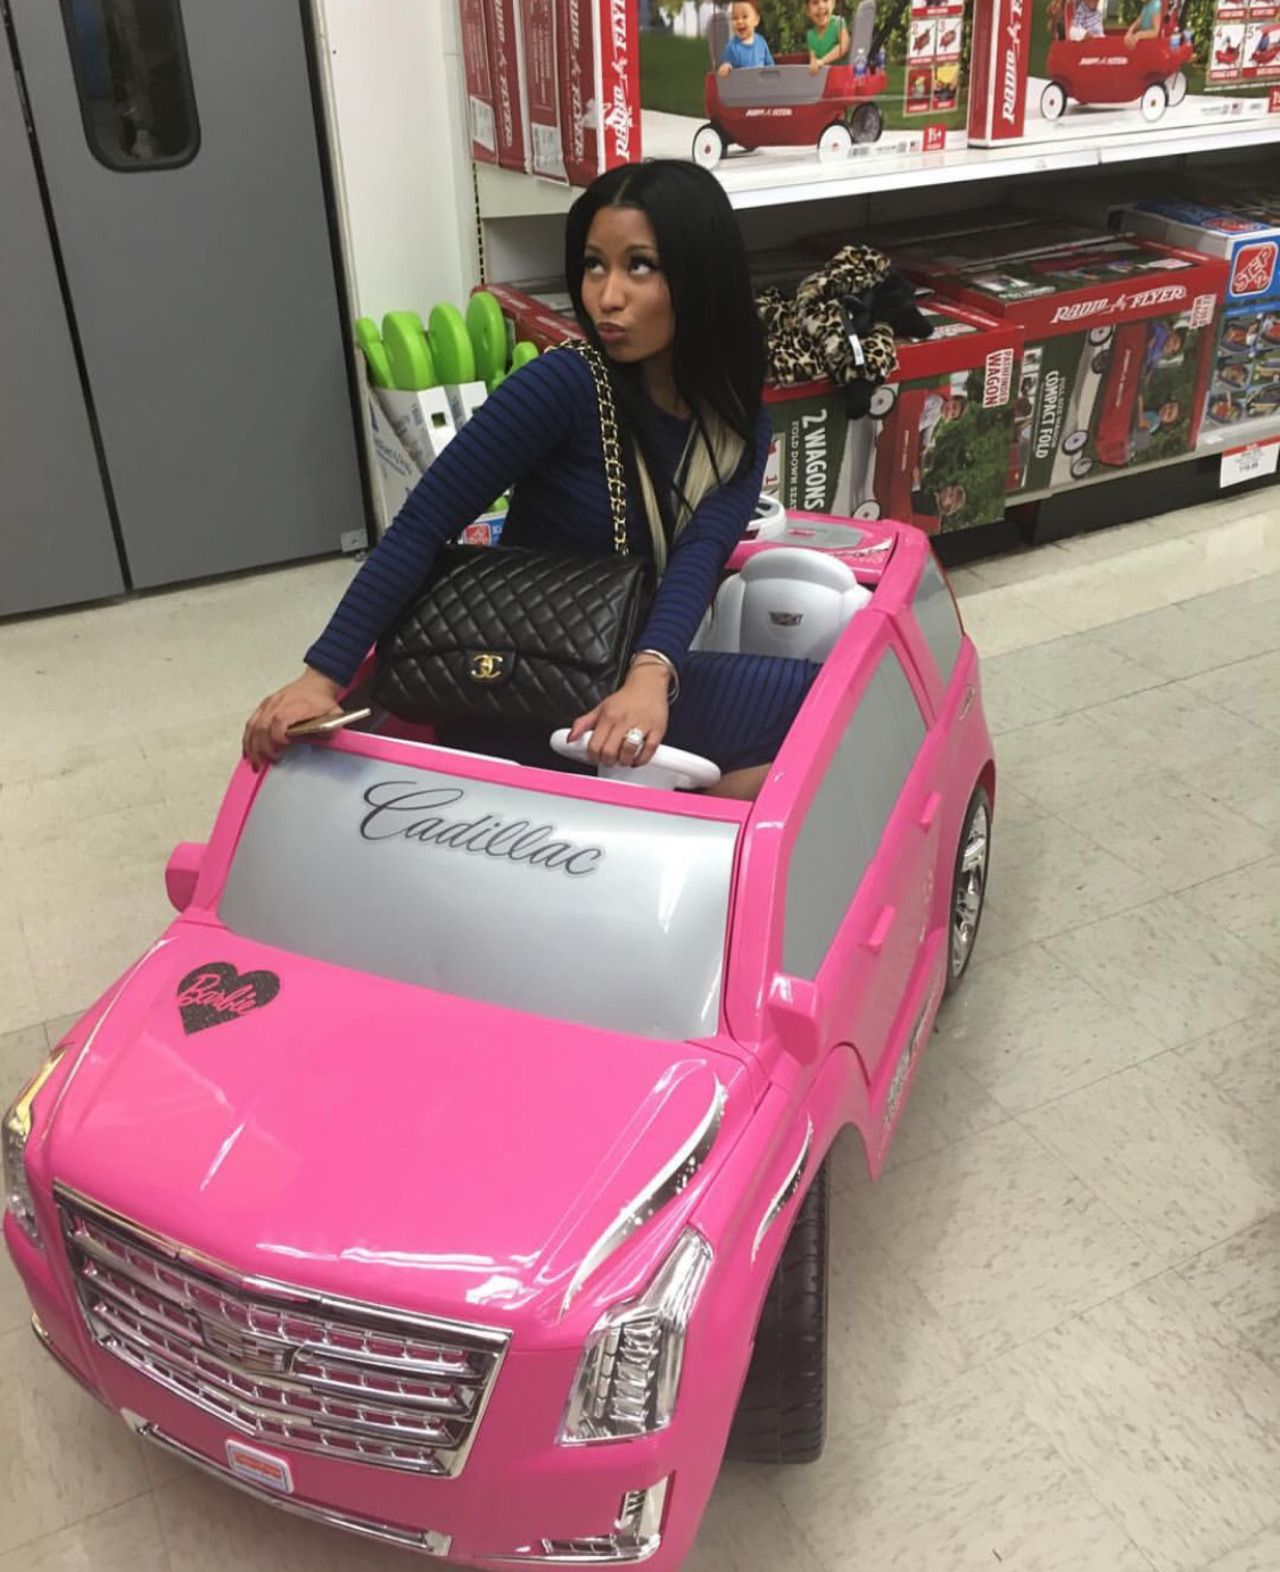 Yeezys Girl Nicki Minaj Barbie Nicki Minaj Photos Nicki Minaj Pictures